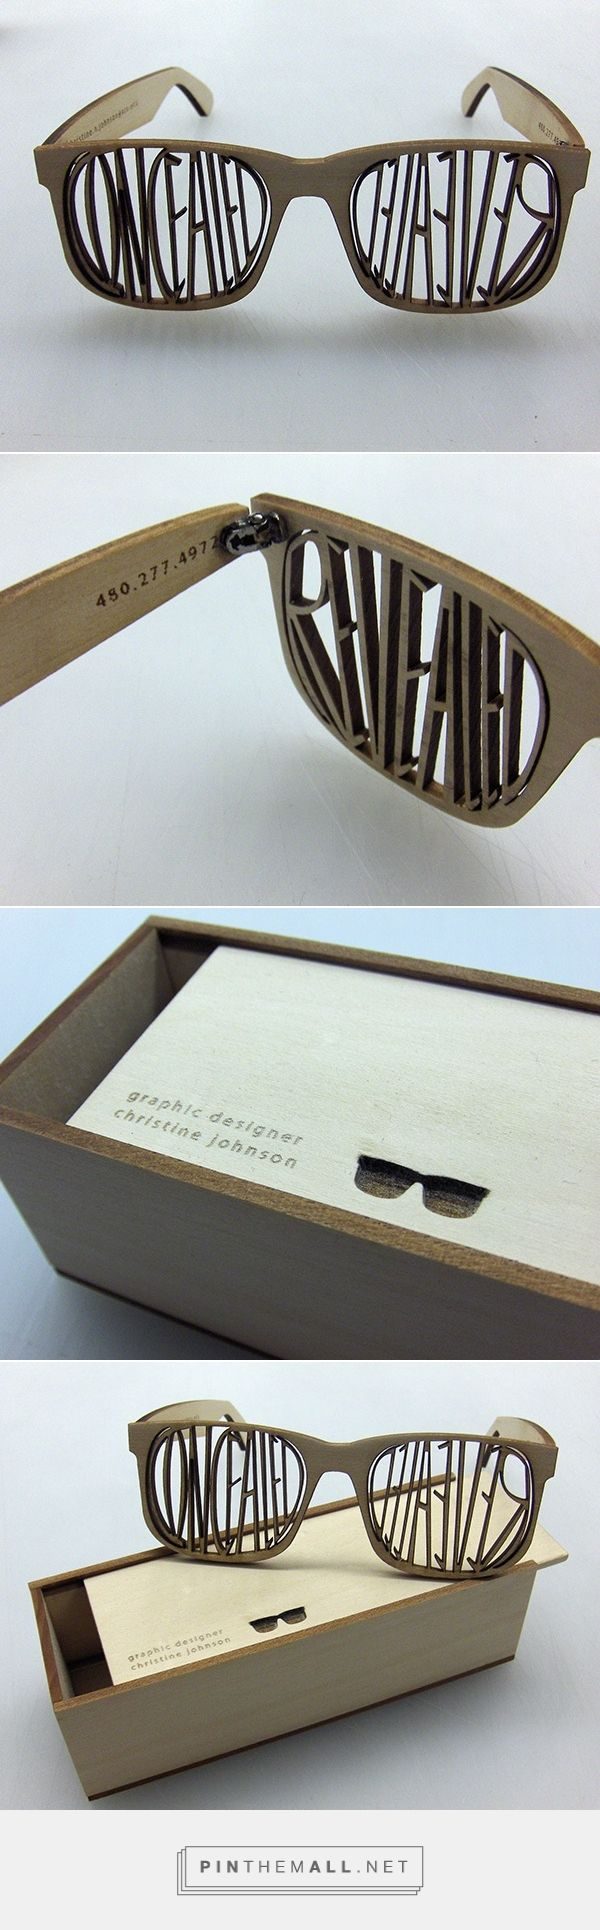 Graphic design and packaging for a Self Promotion Piece on Behance by Christine Johnson Seattle, WA. How cool are these sunglasses as a promotion piece?